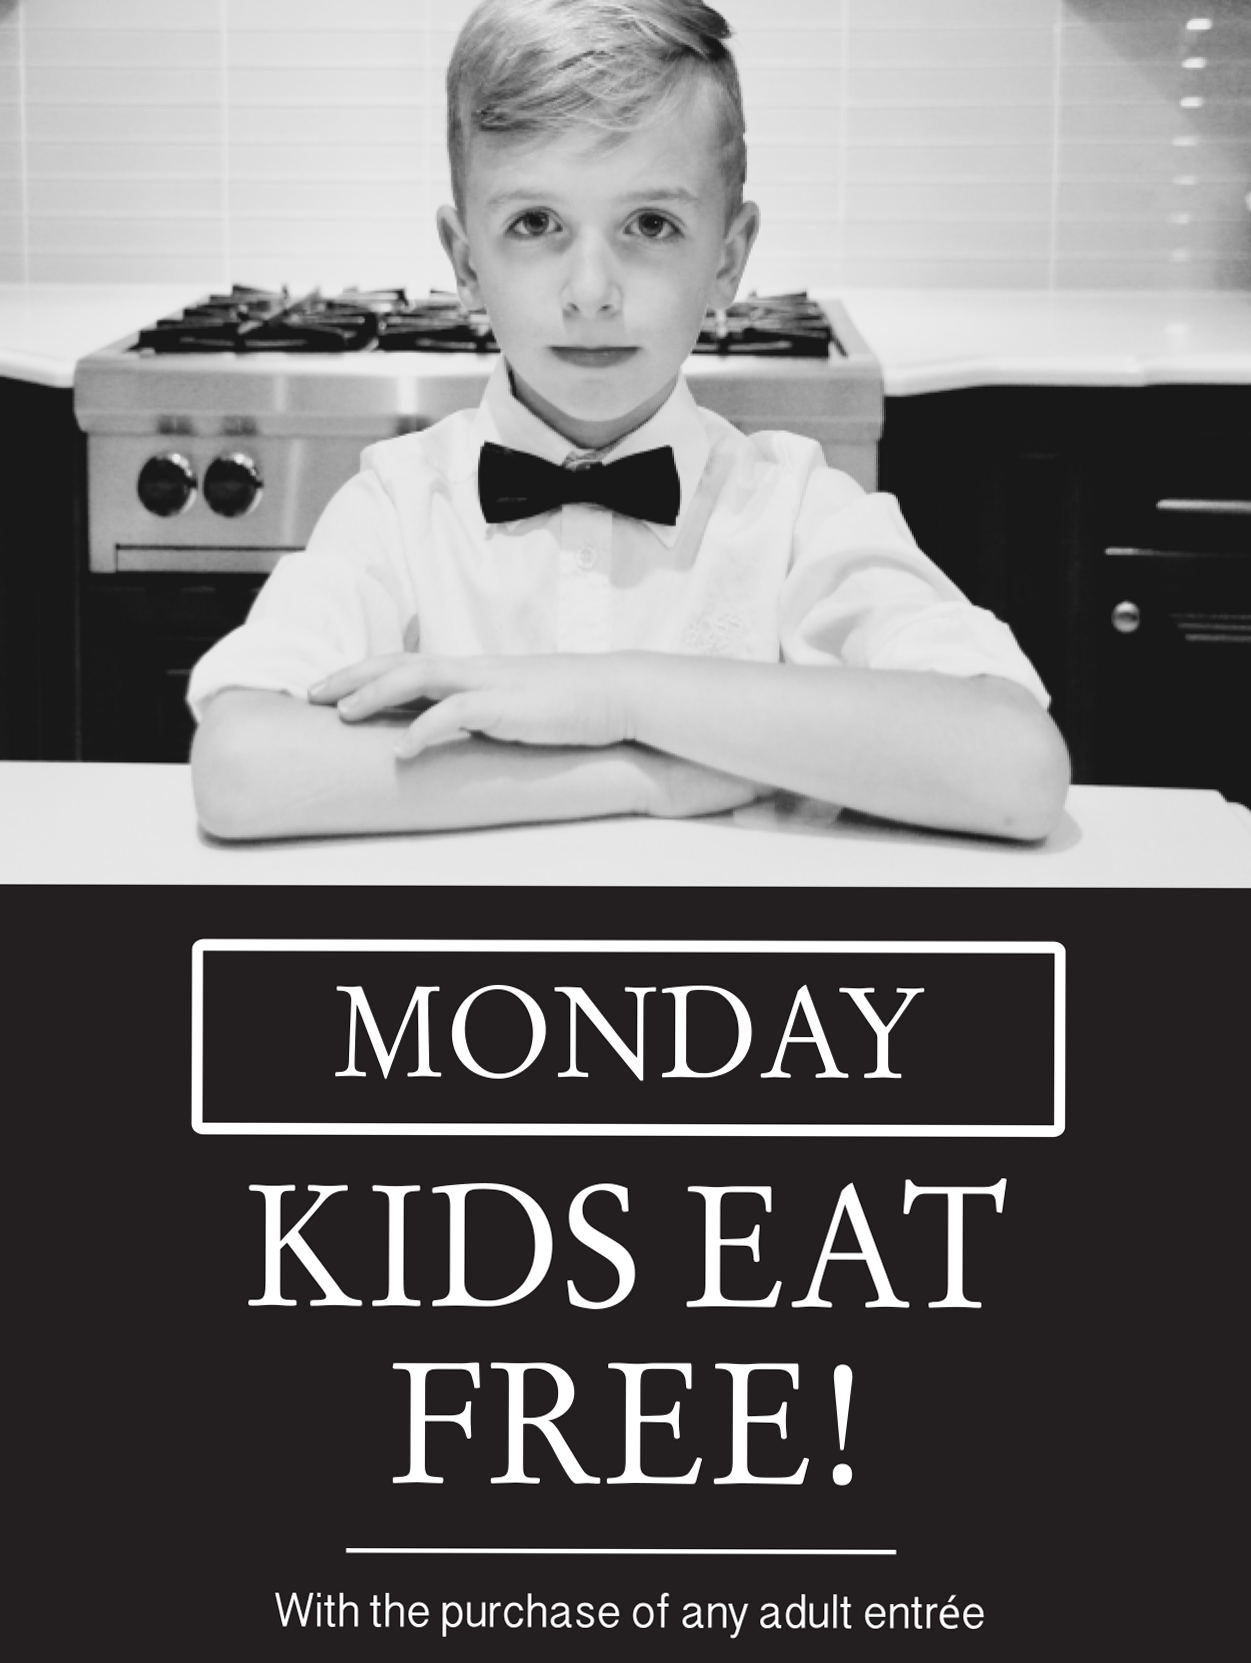 Promotional image for Monday Kids Eat Free